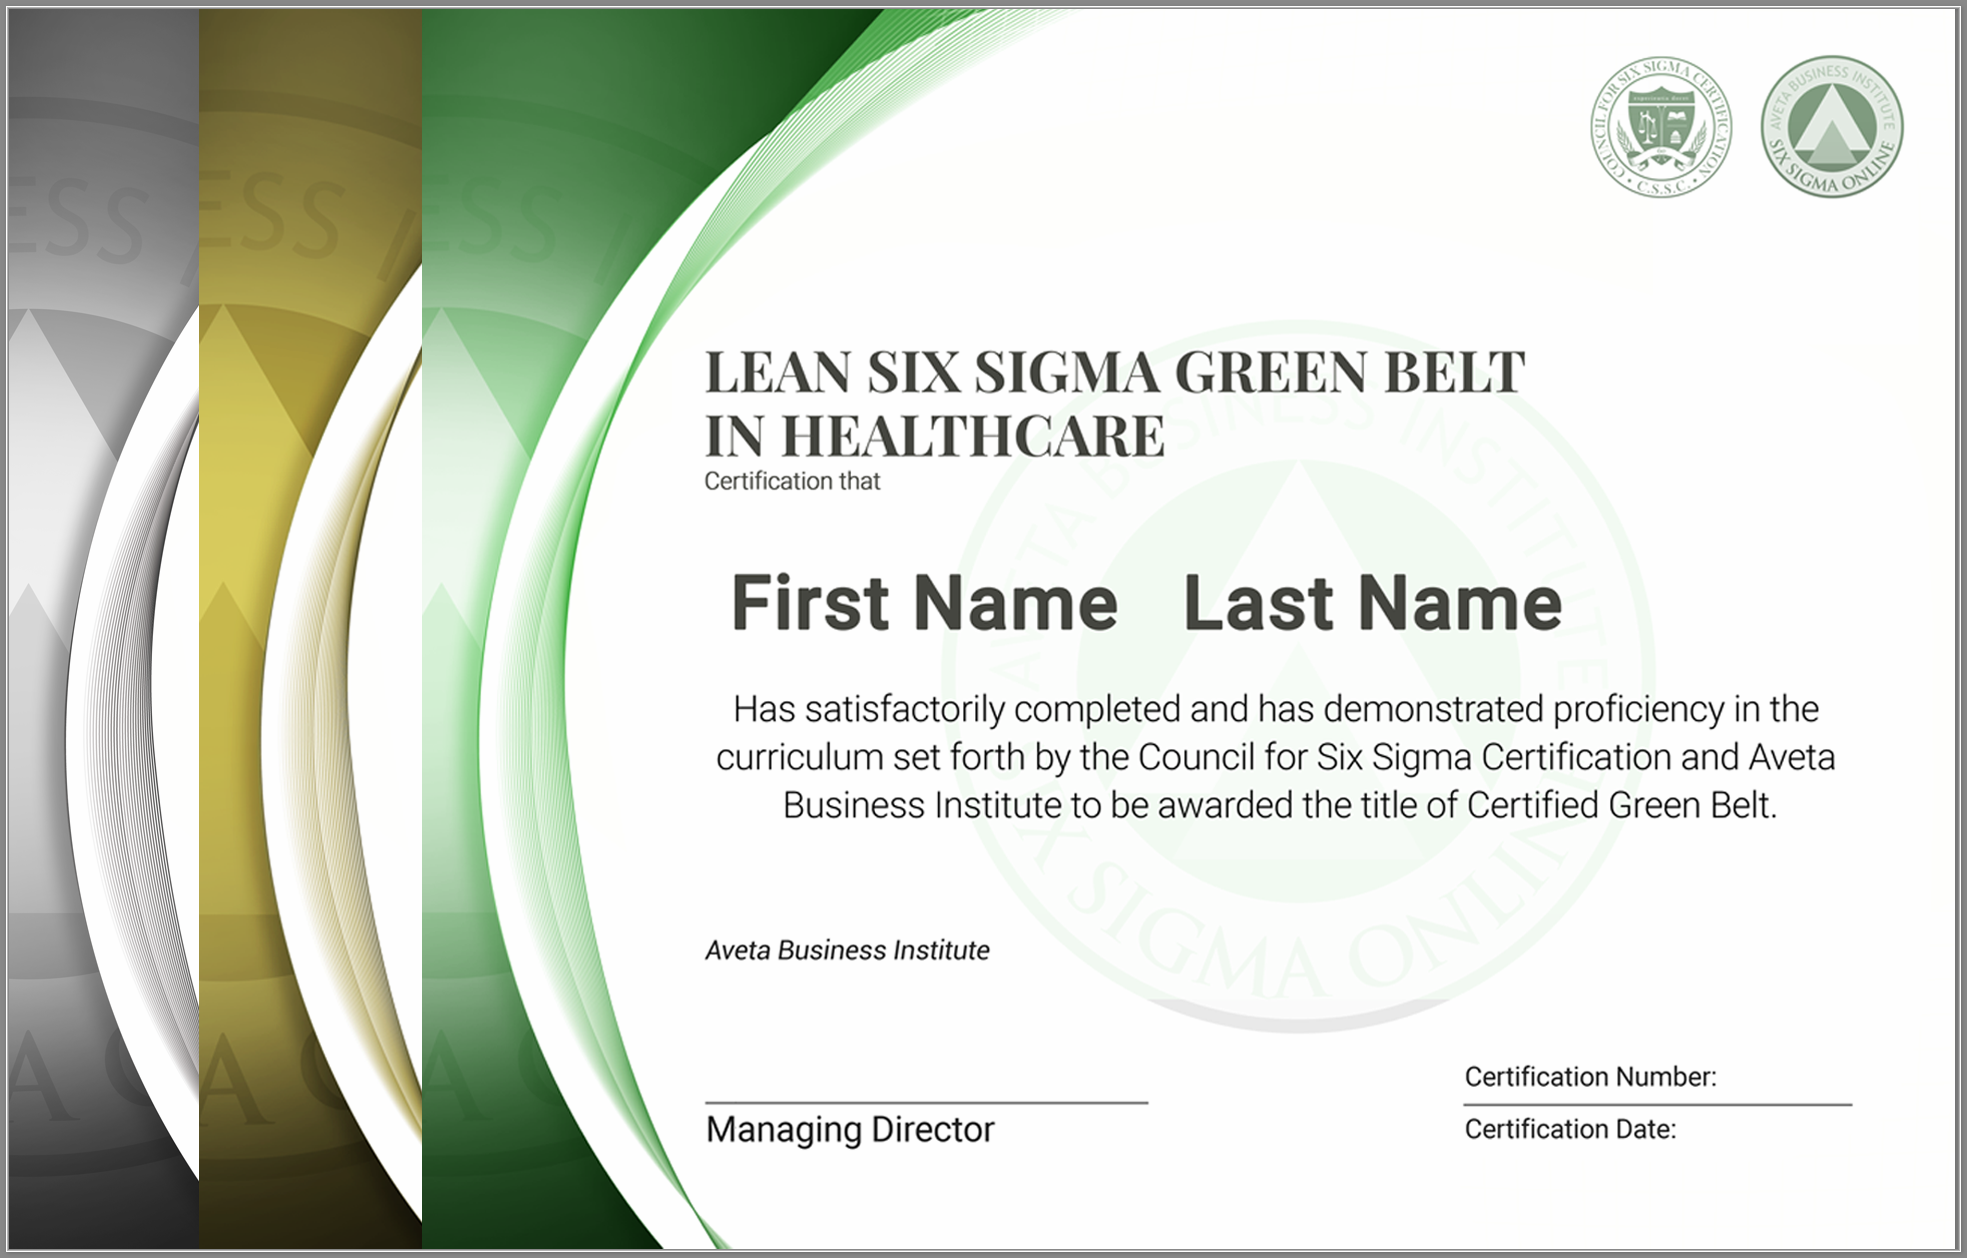 Six sigma green belt training cannot be!